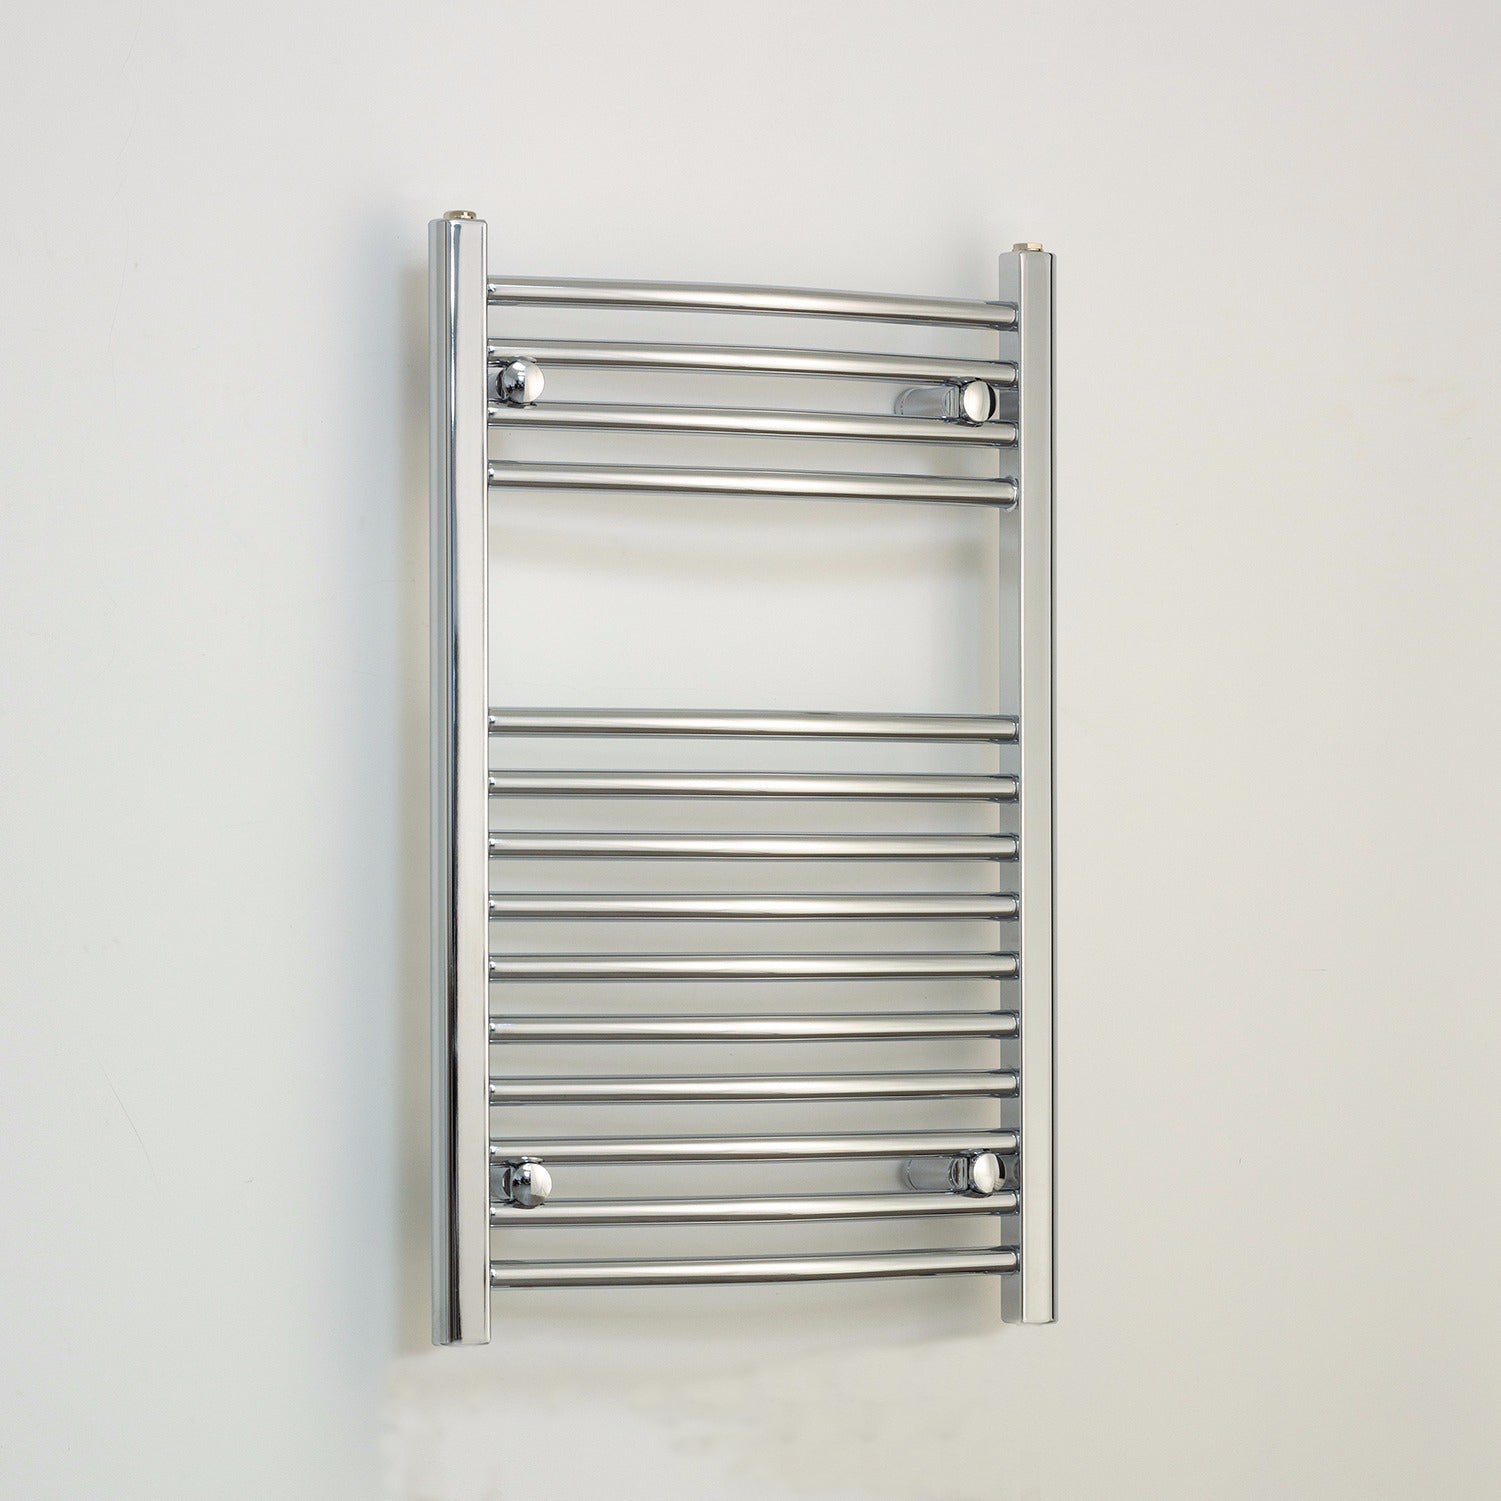 500mm Wide 800mm High Chrome Towel Rail Radiator